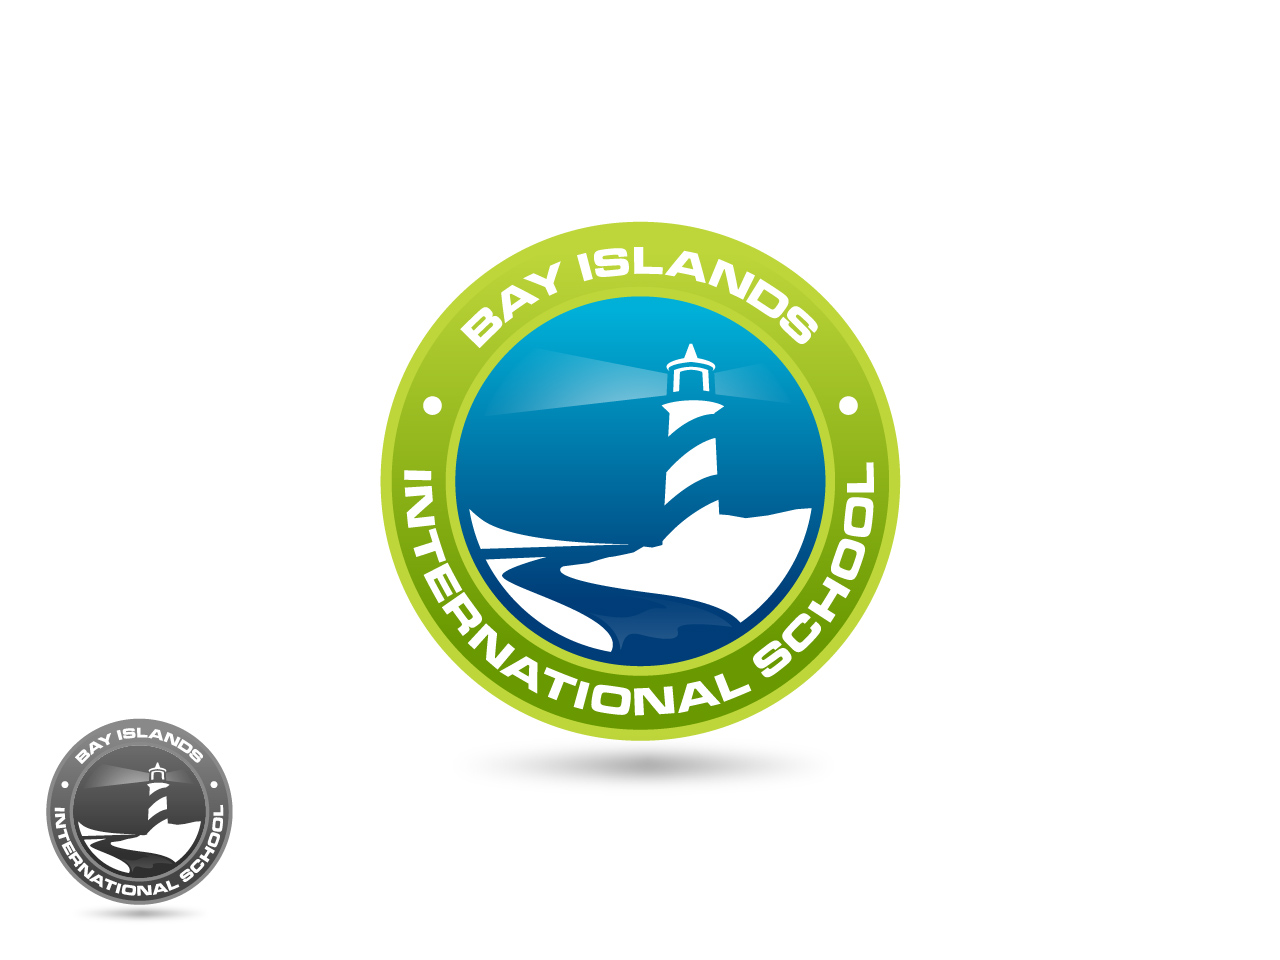 Logo Design by jpbituin - Entry No. 32 in the Logo Design Contest Creative Logo Design for Bay Islands International School.